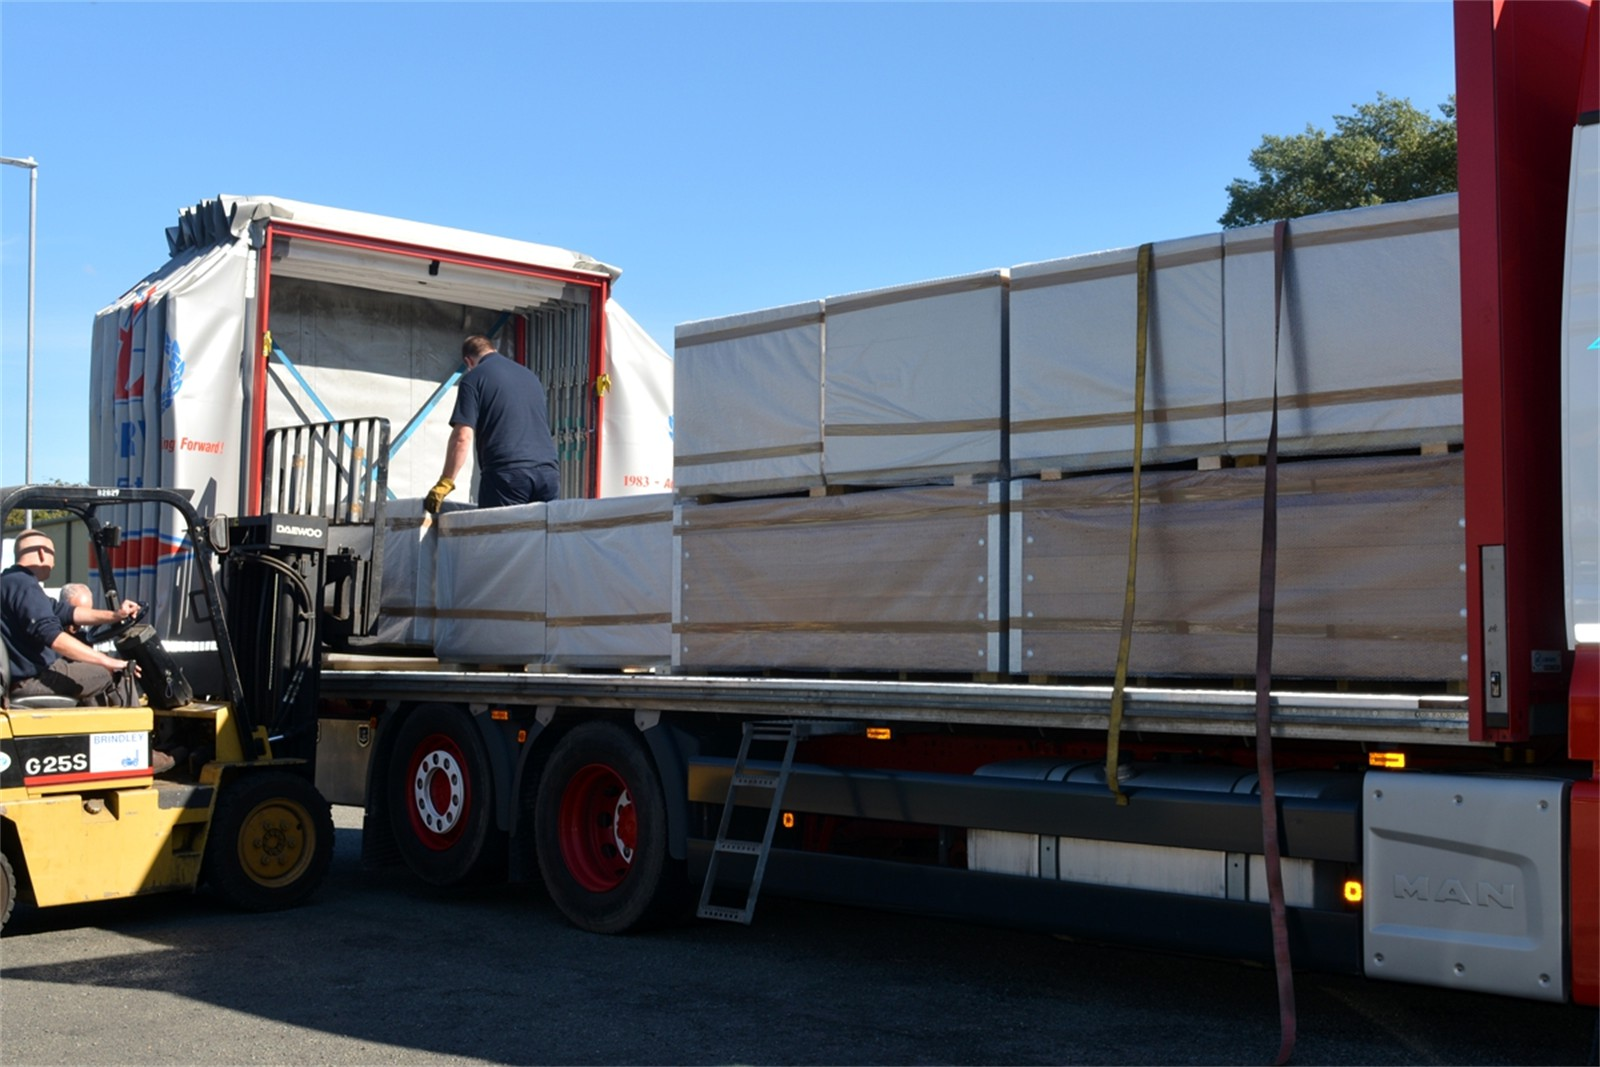 c121t10 - Planters loaded ready for delivery to site